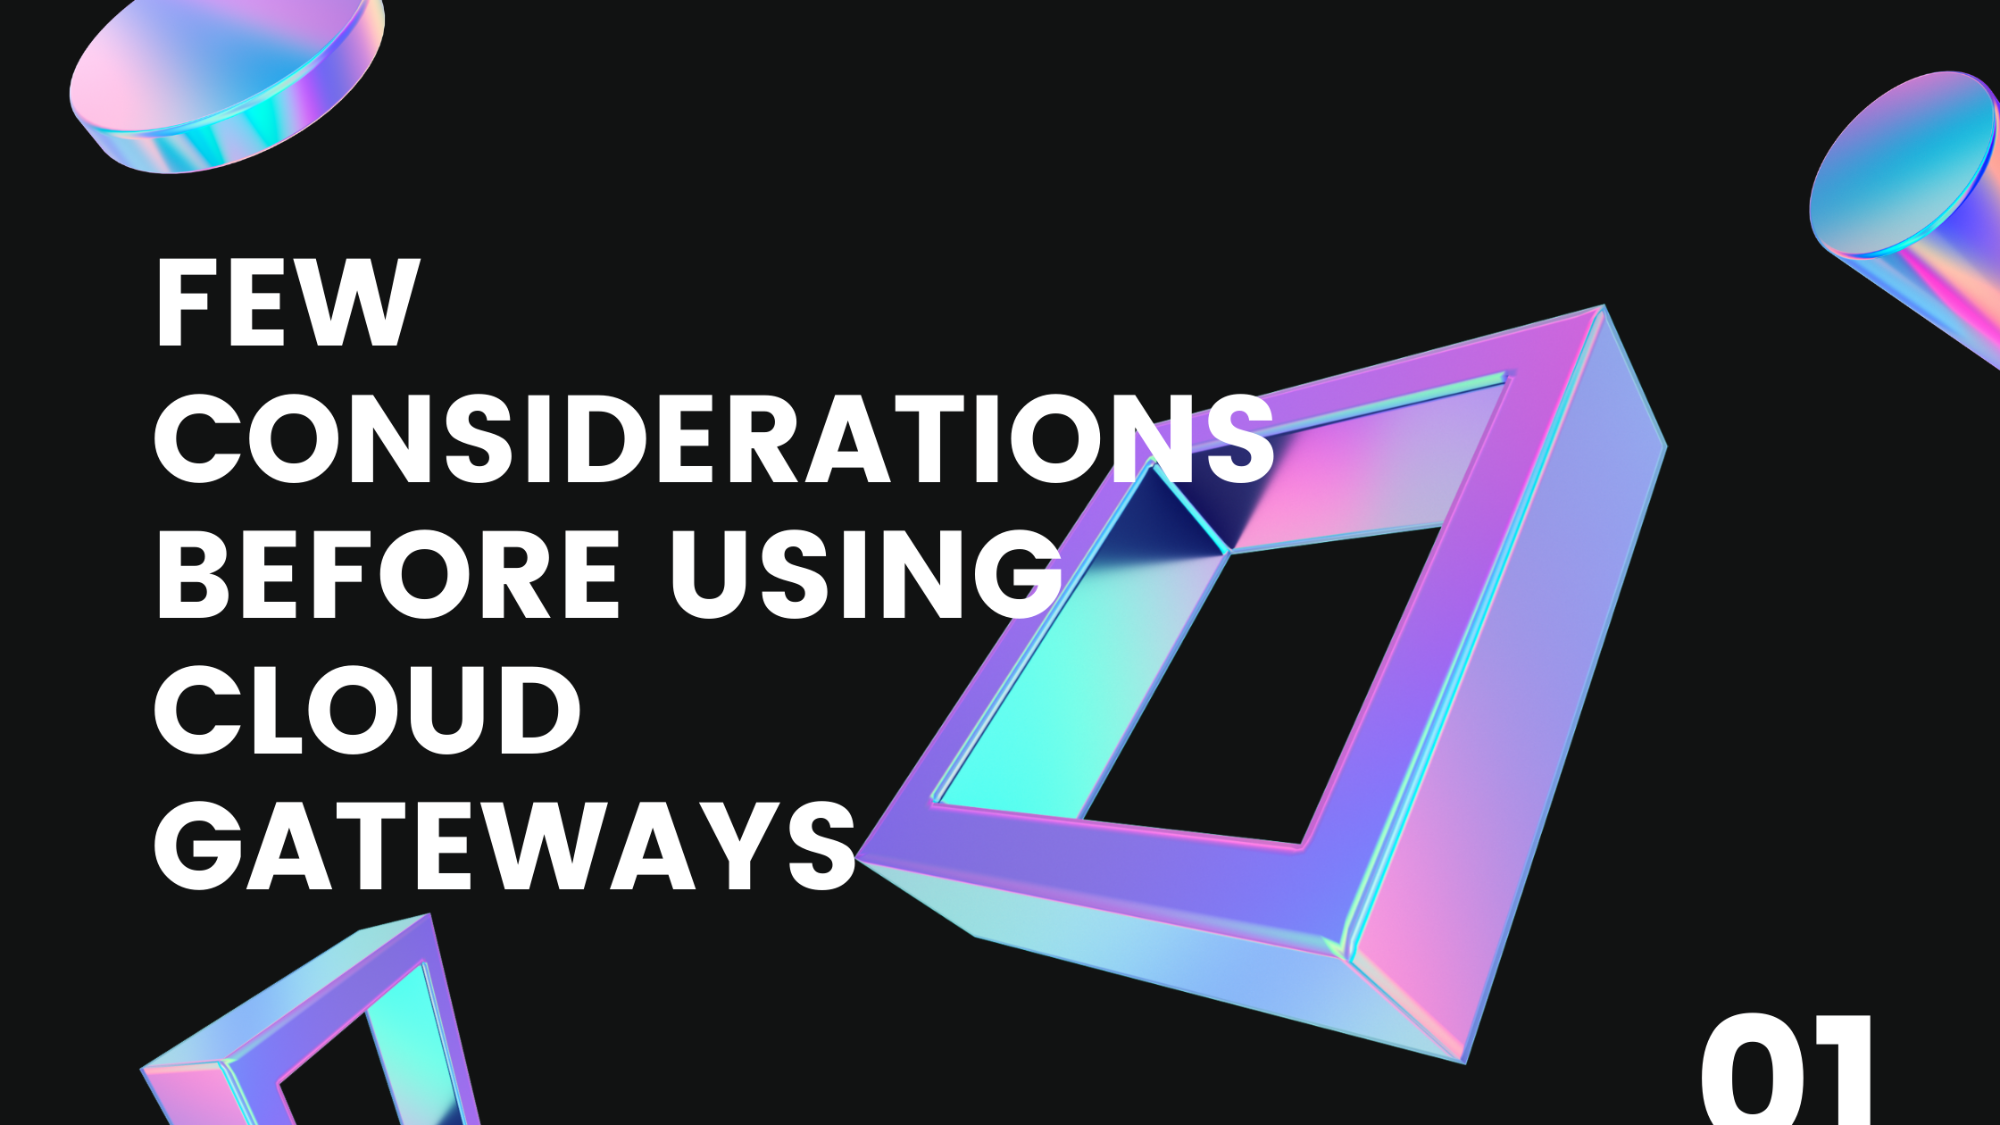 FEW CONSIDERATIONS BEFORE USING CLOUD GATEWAYS